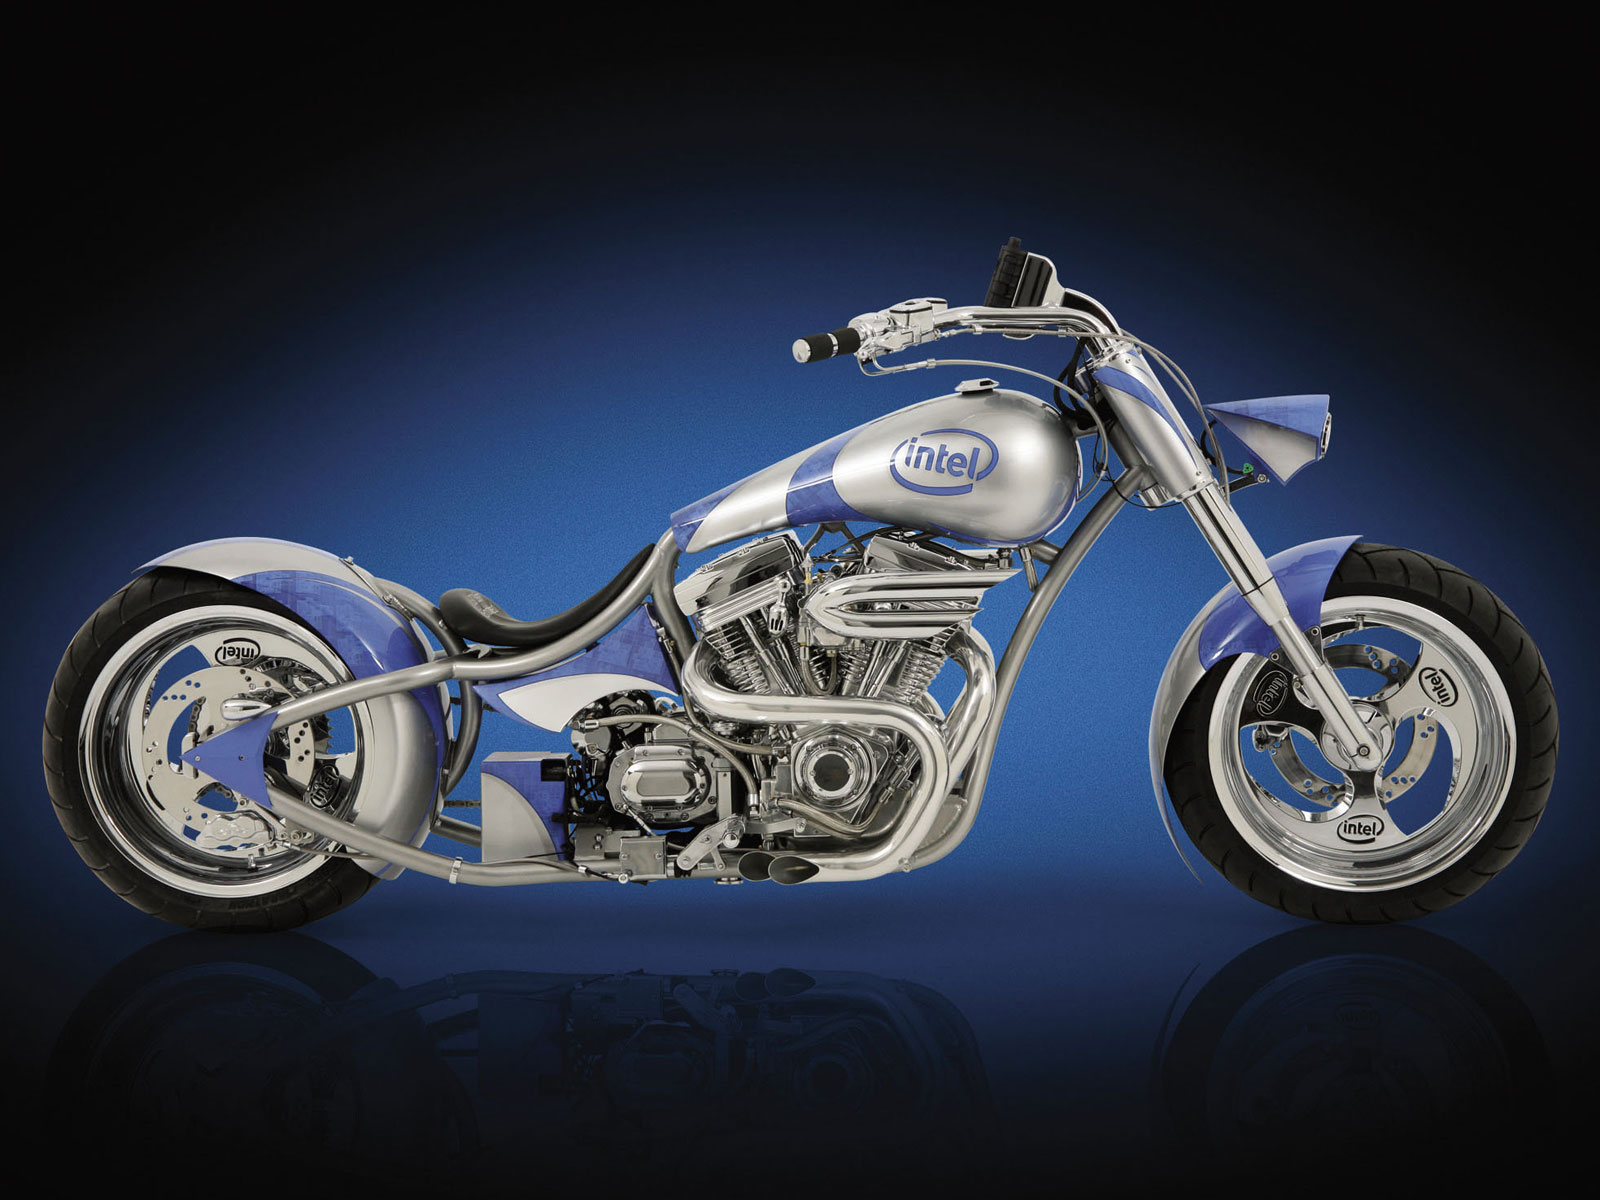 Fire Custom Chopper Motorcycle Wallpaper